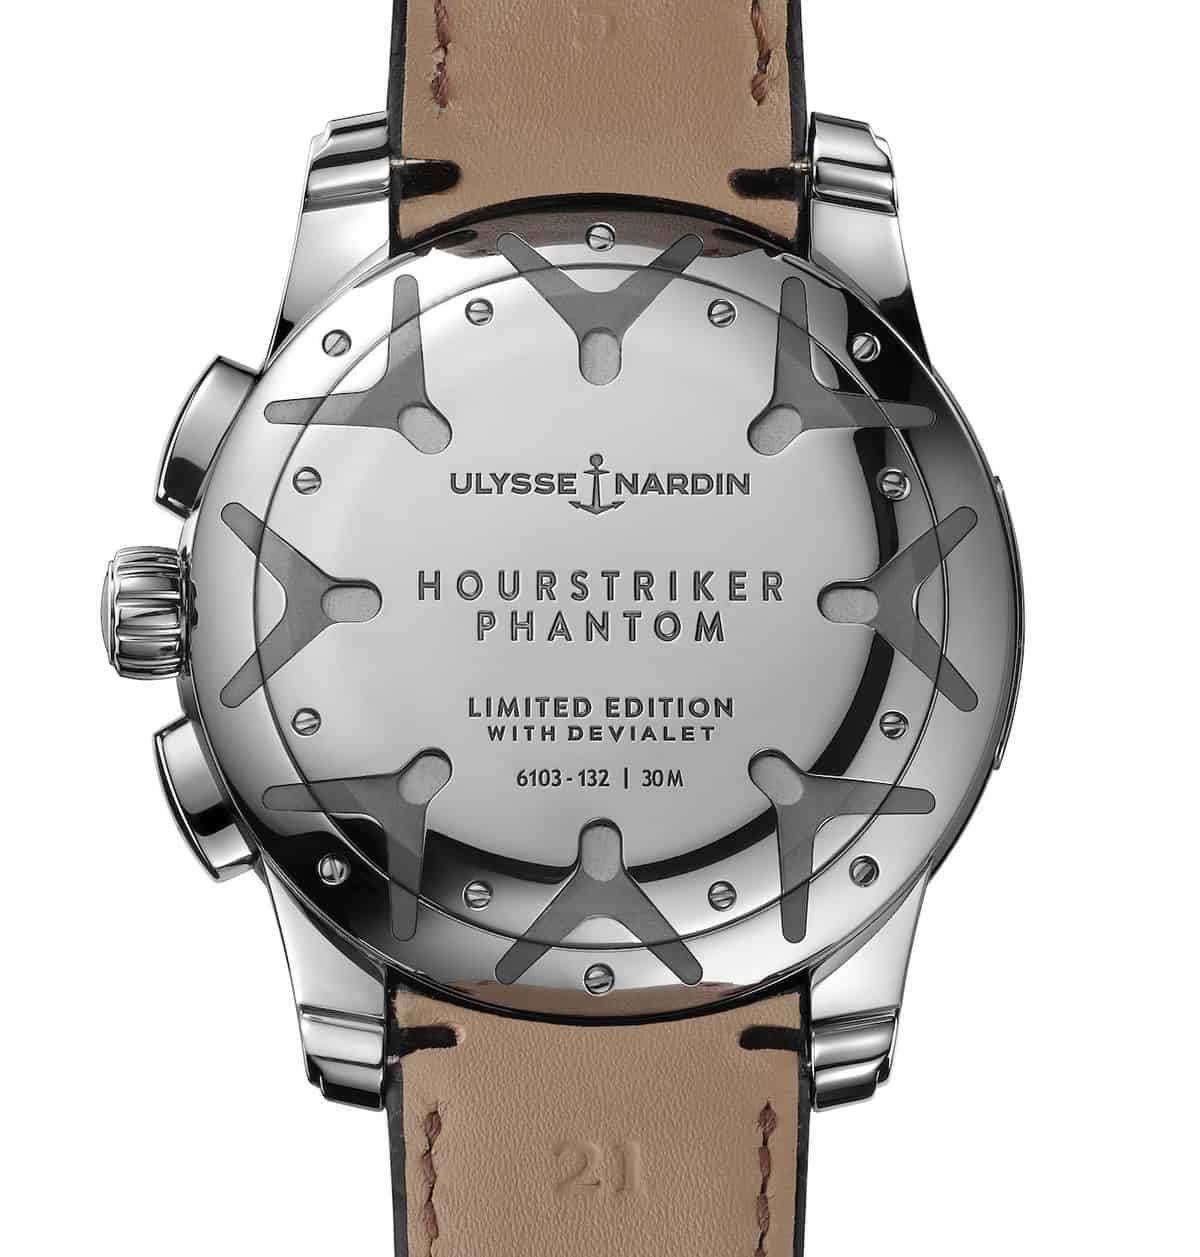 Ulysse Nardin Hourstriker Phantom Limited Edition Watch Devialet 8